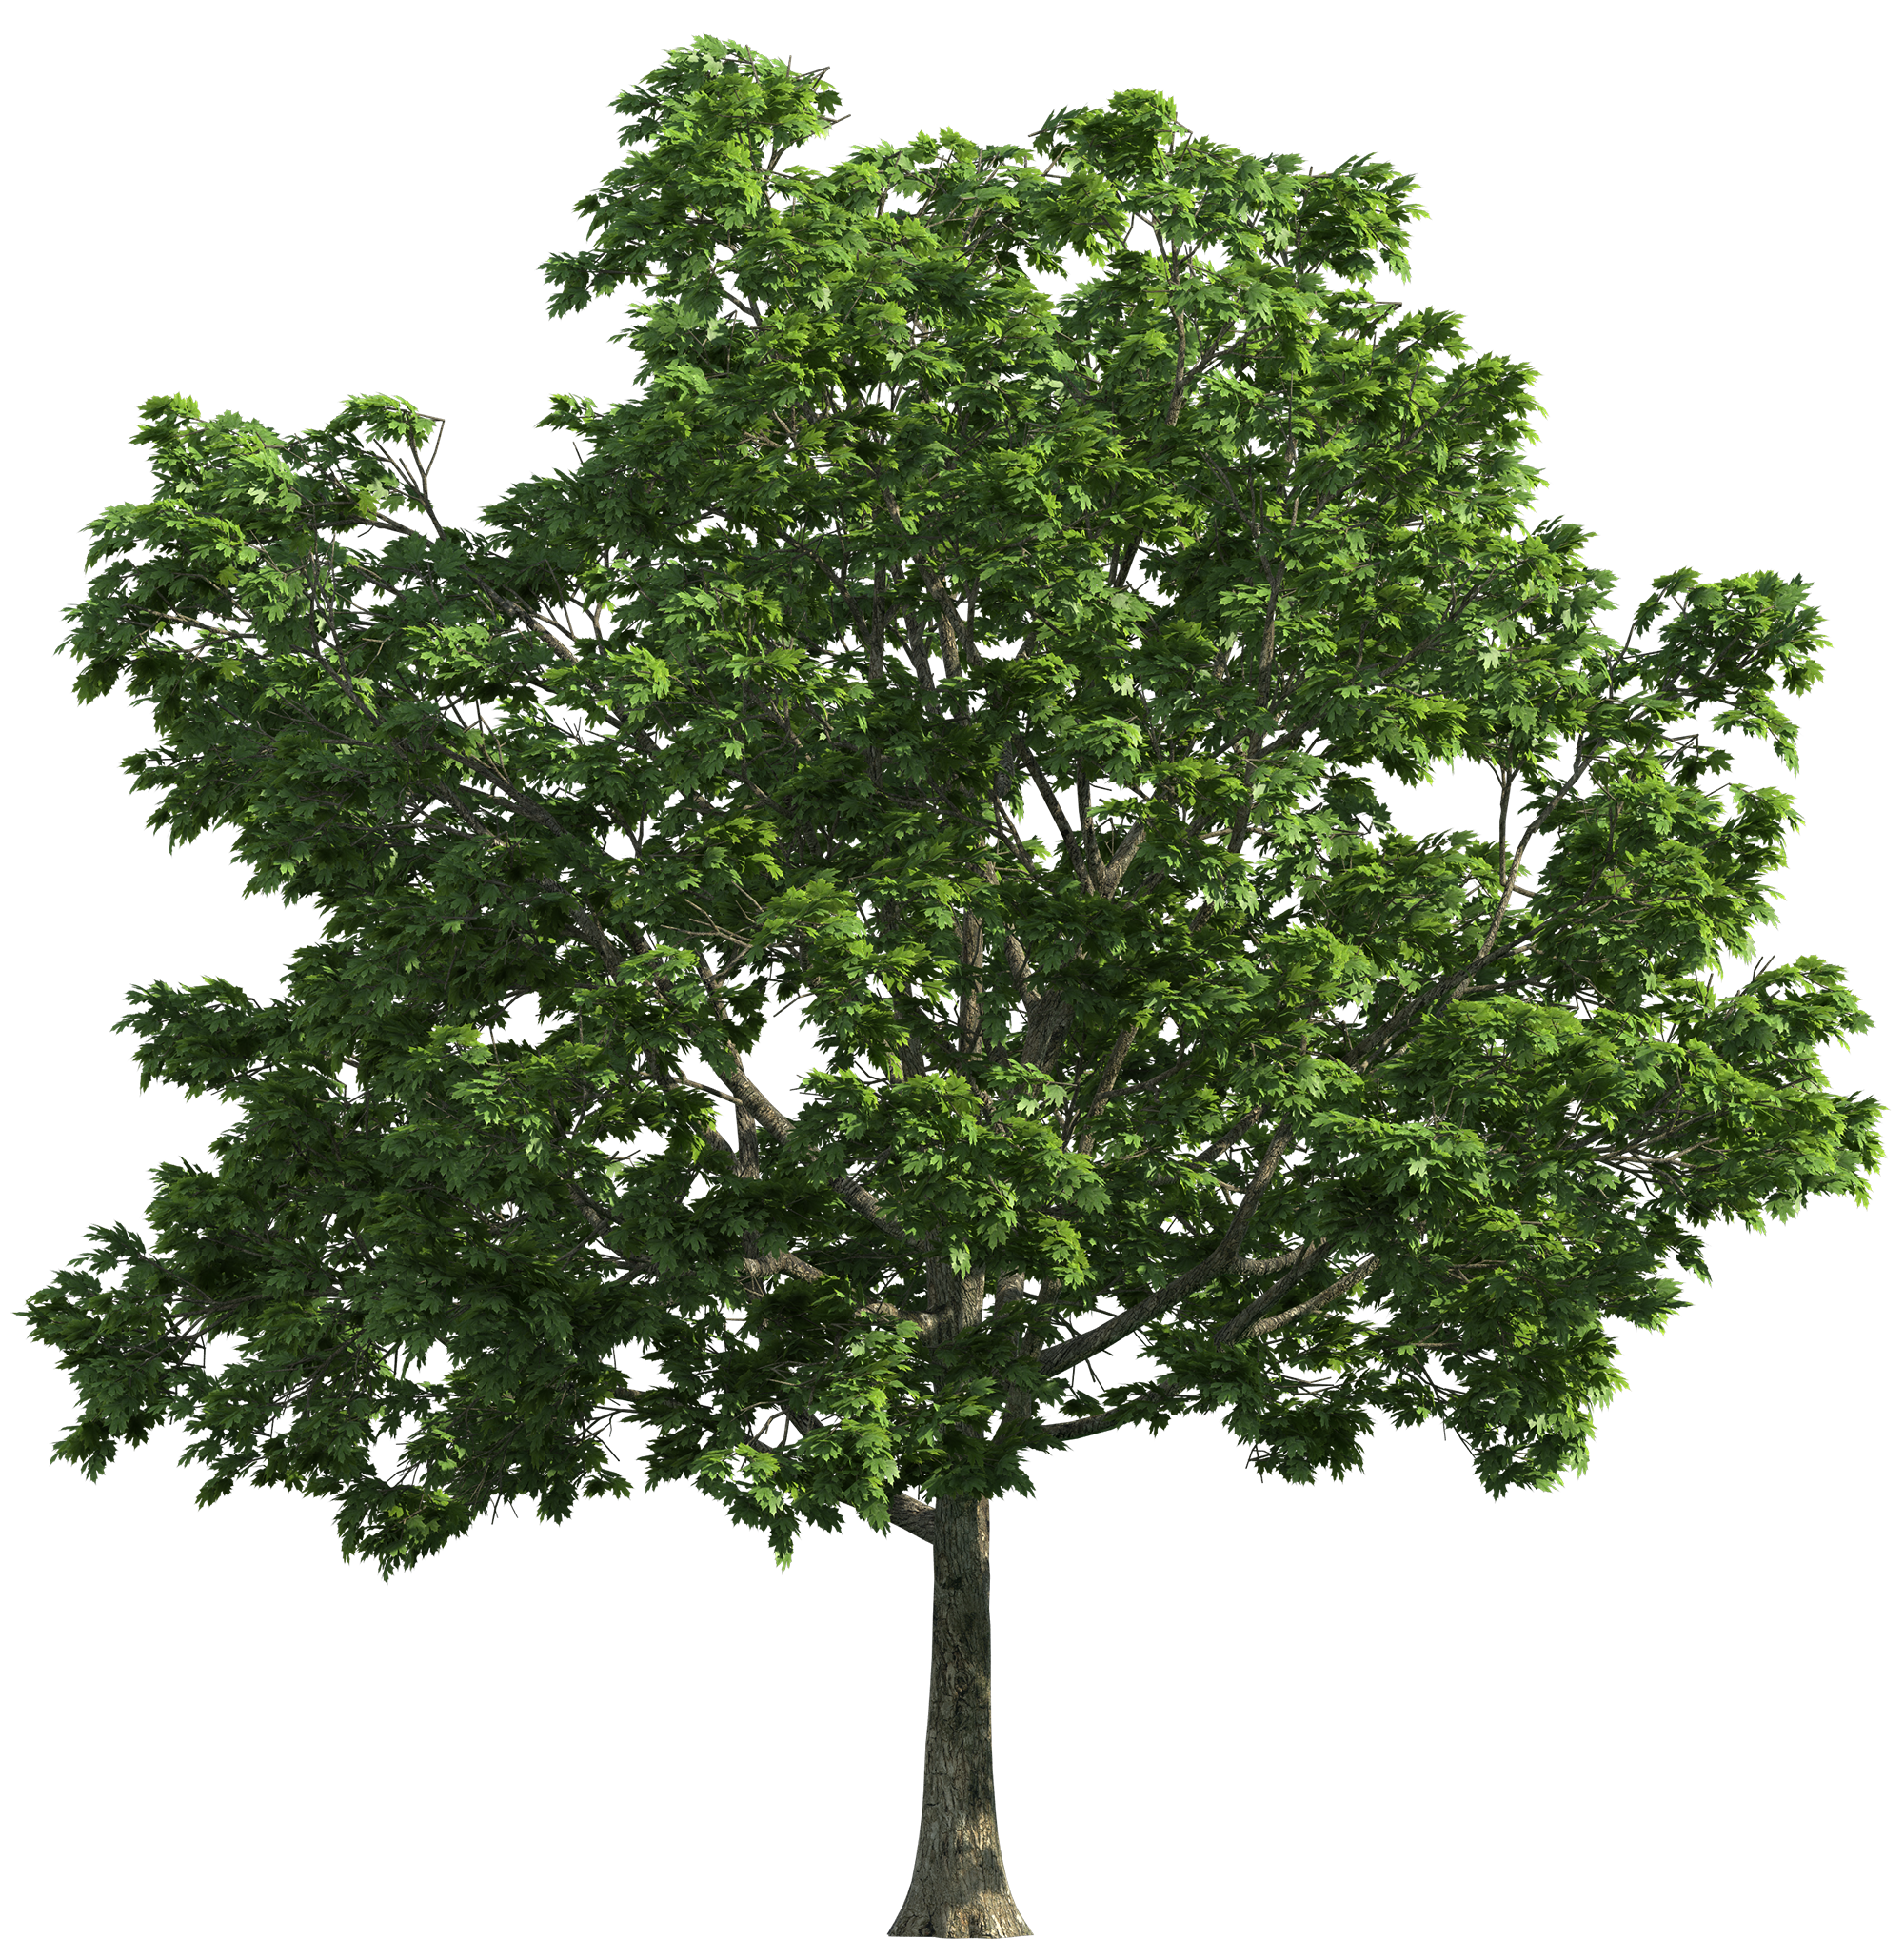 Tree PNG Image - PurePNG | Free transparent CC0 PNG Image Library